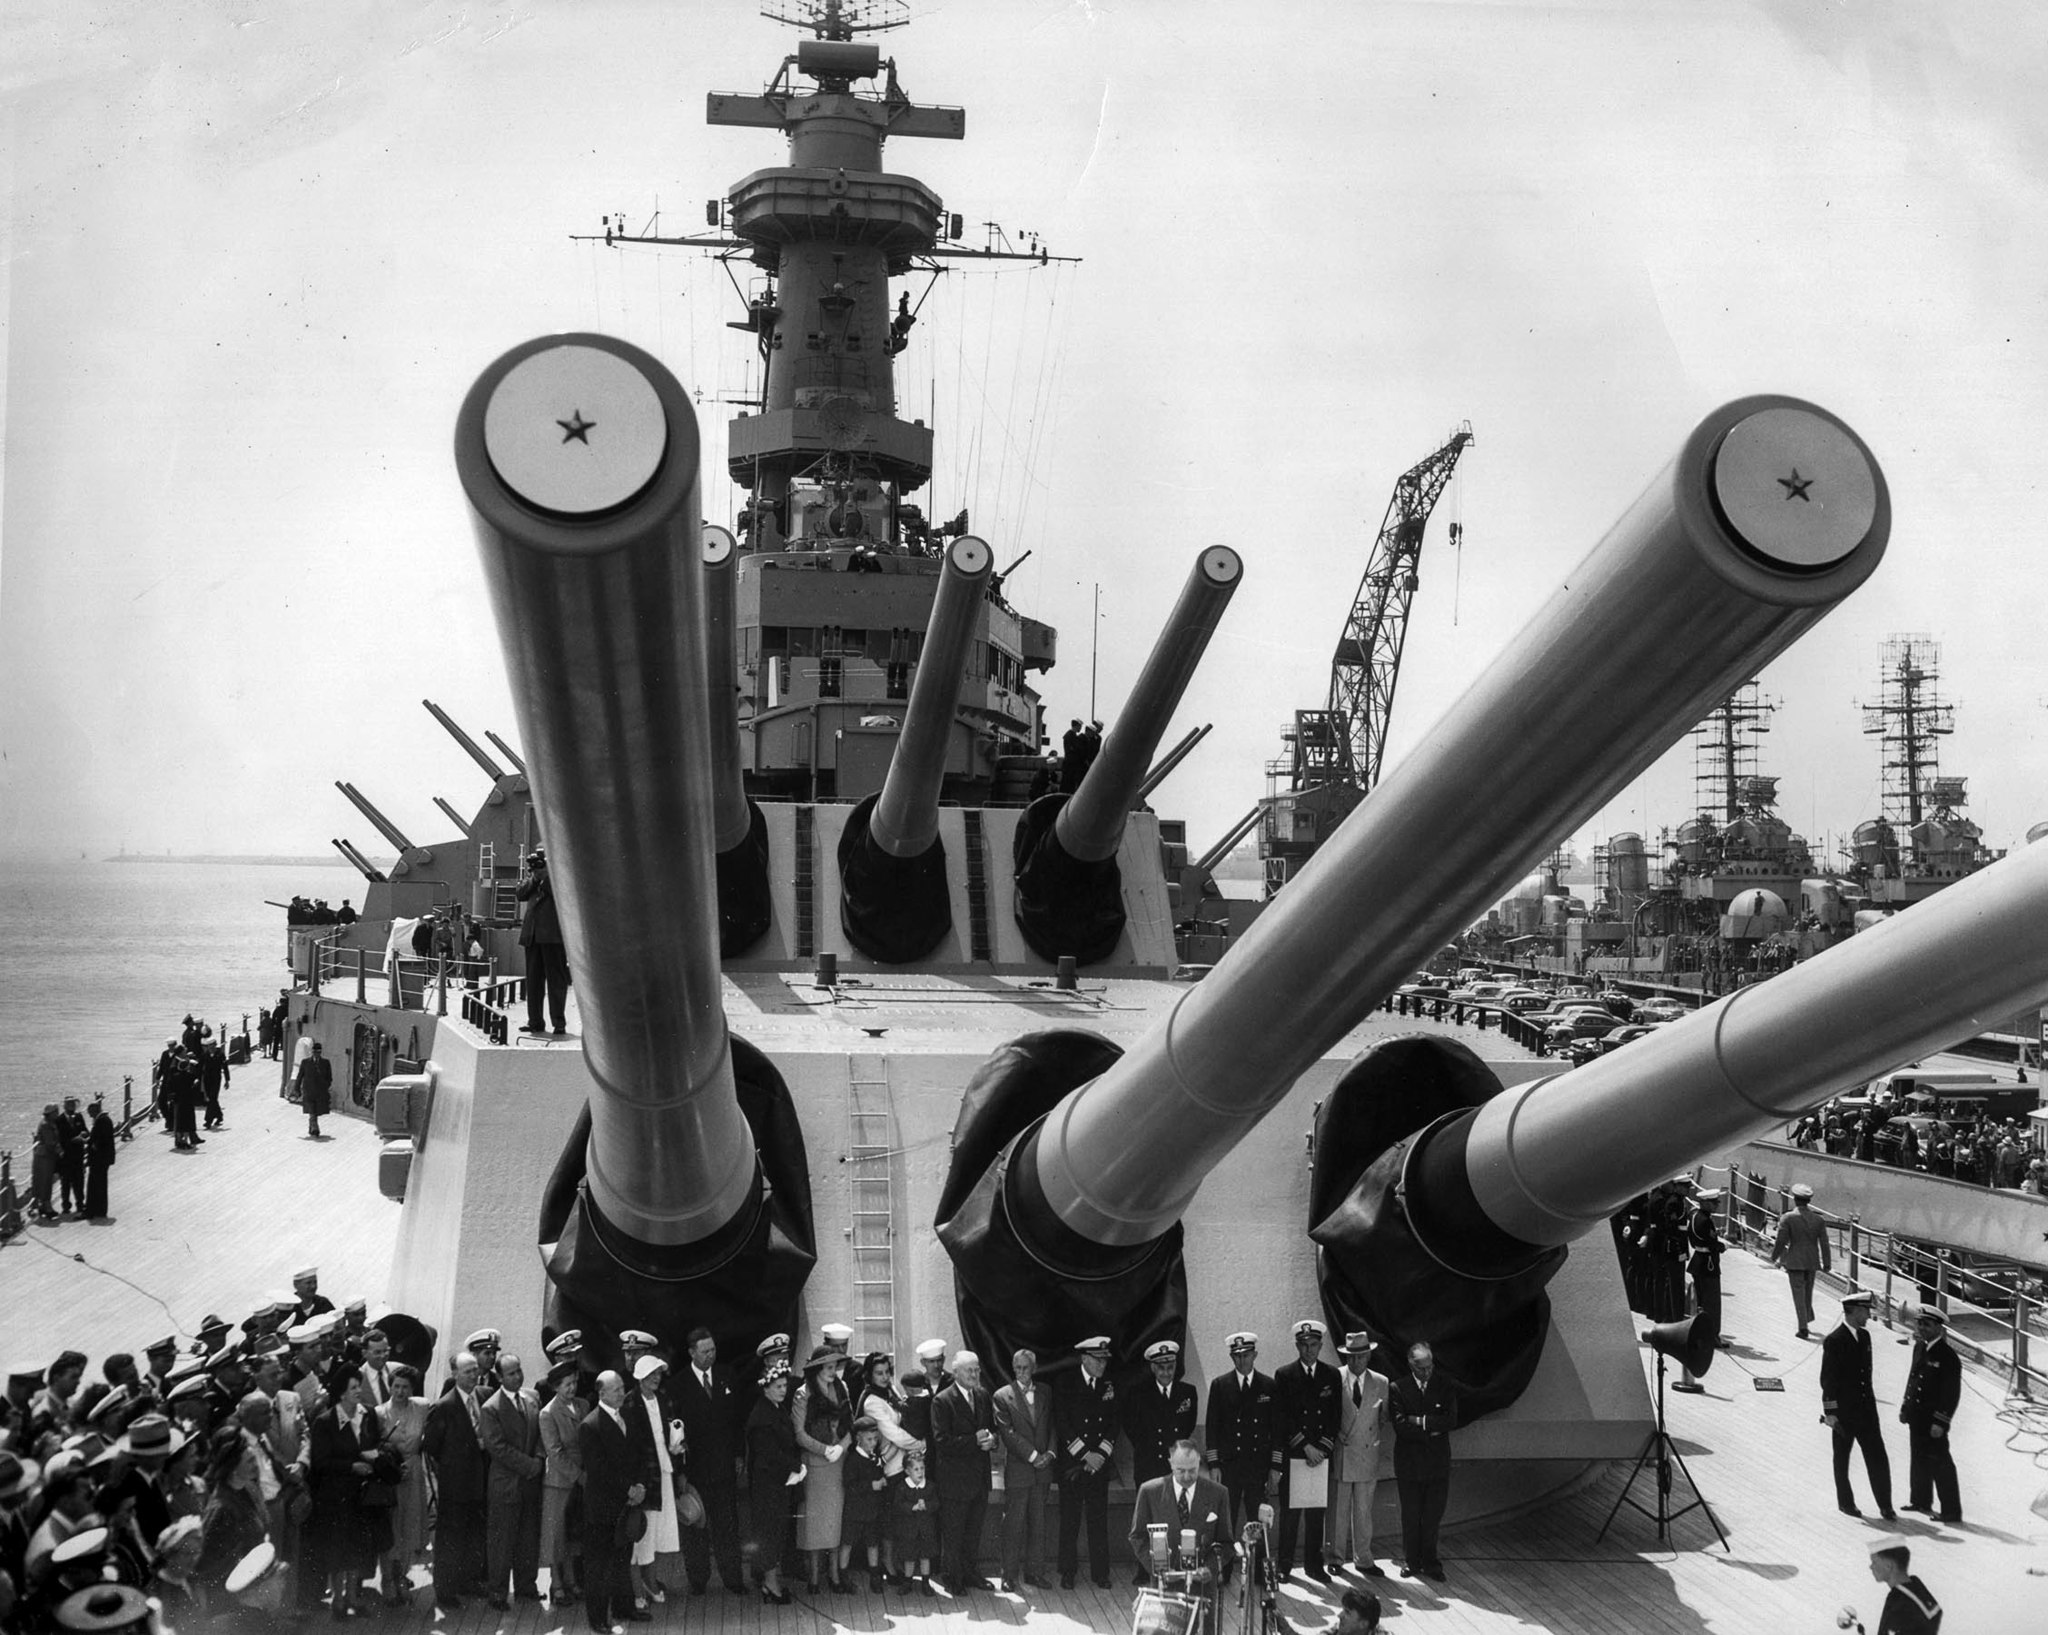 April 12, 1951: Ceremoney on the USS Missouri in Long Beach, CA. following the ship's return from